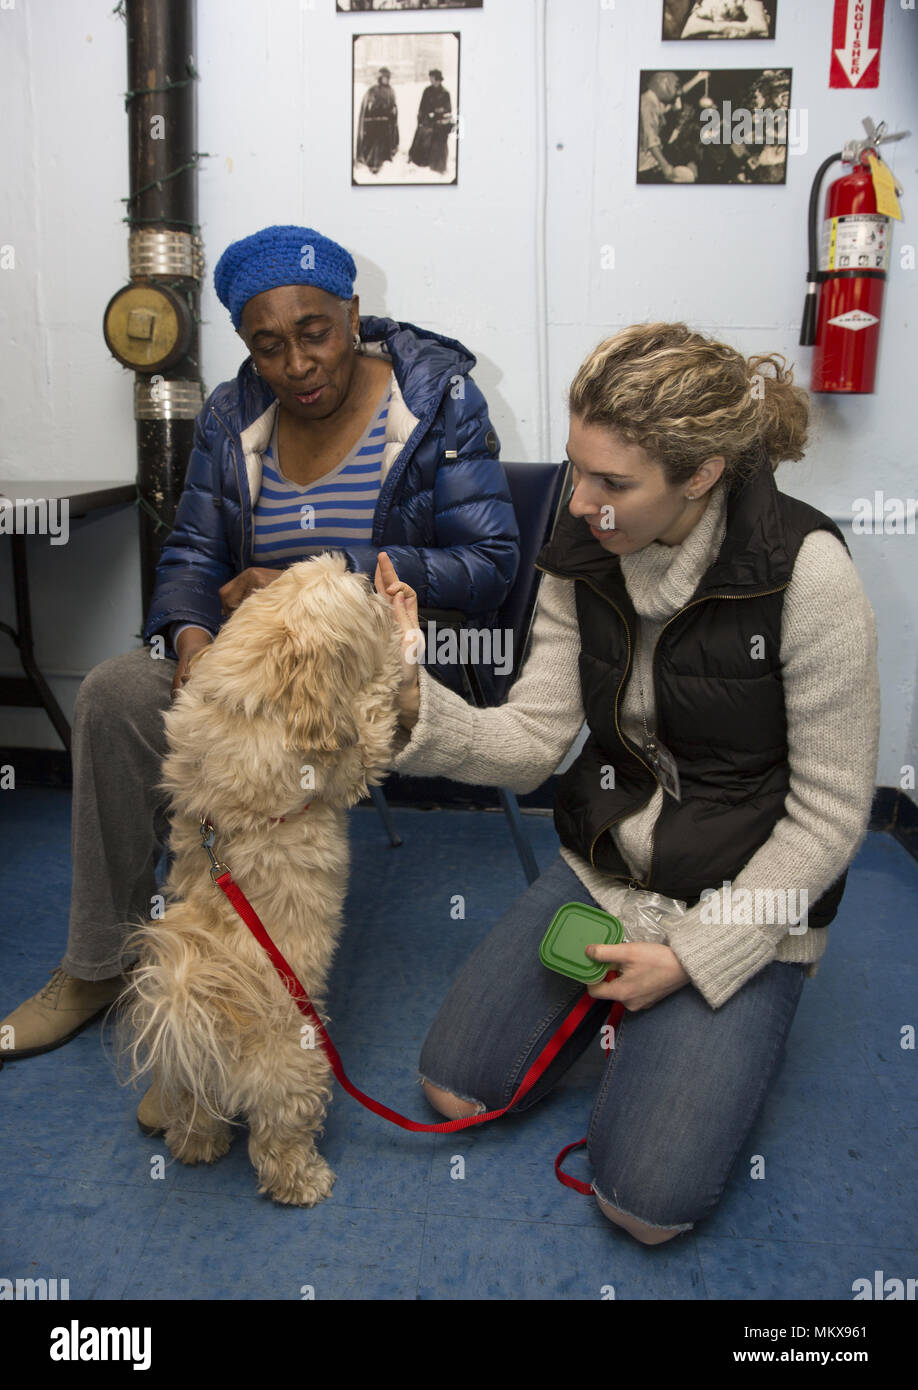 Dog therapist with therapy dog visits regularly a senior center on the Lower East Side of Manhattan, New York City. - Stock Image